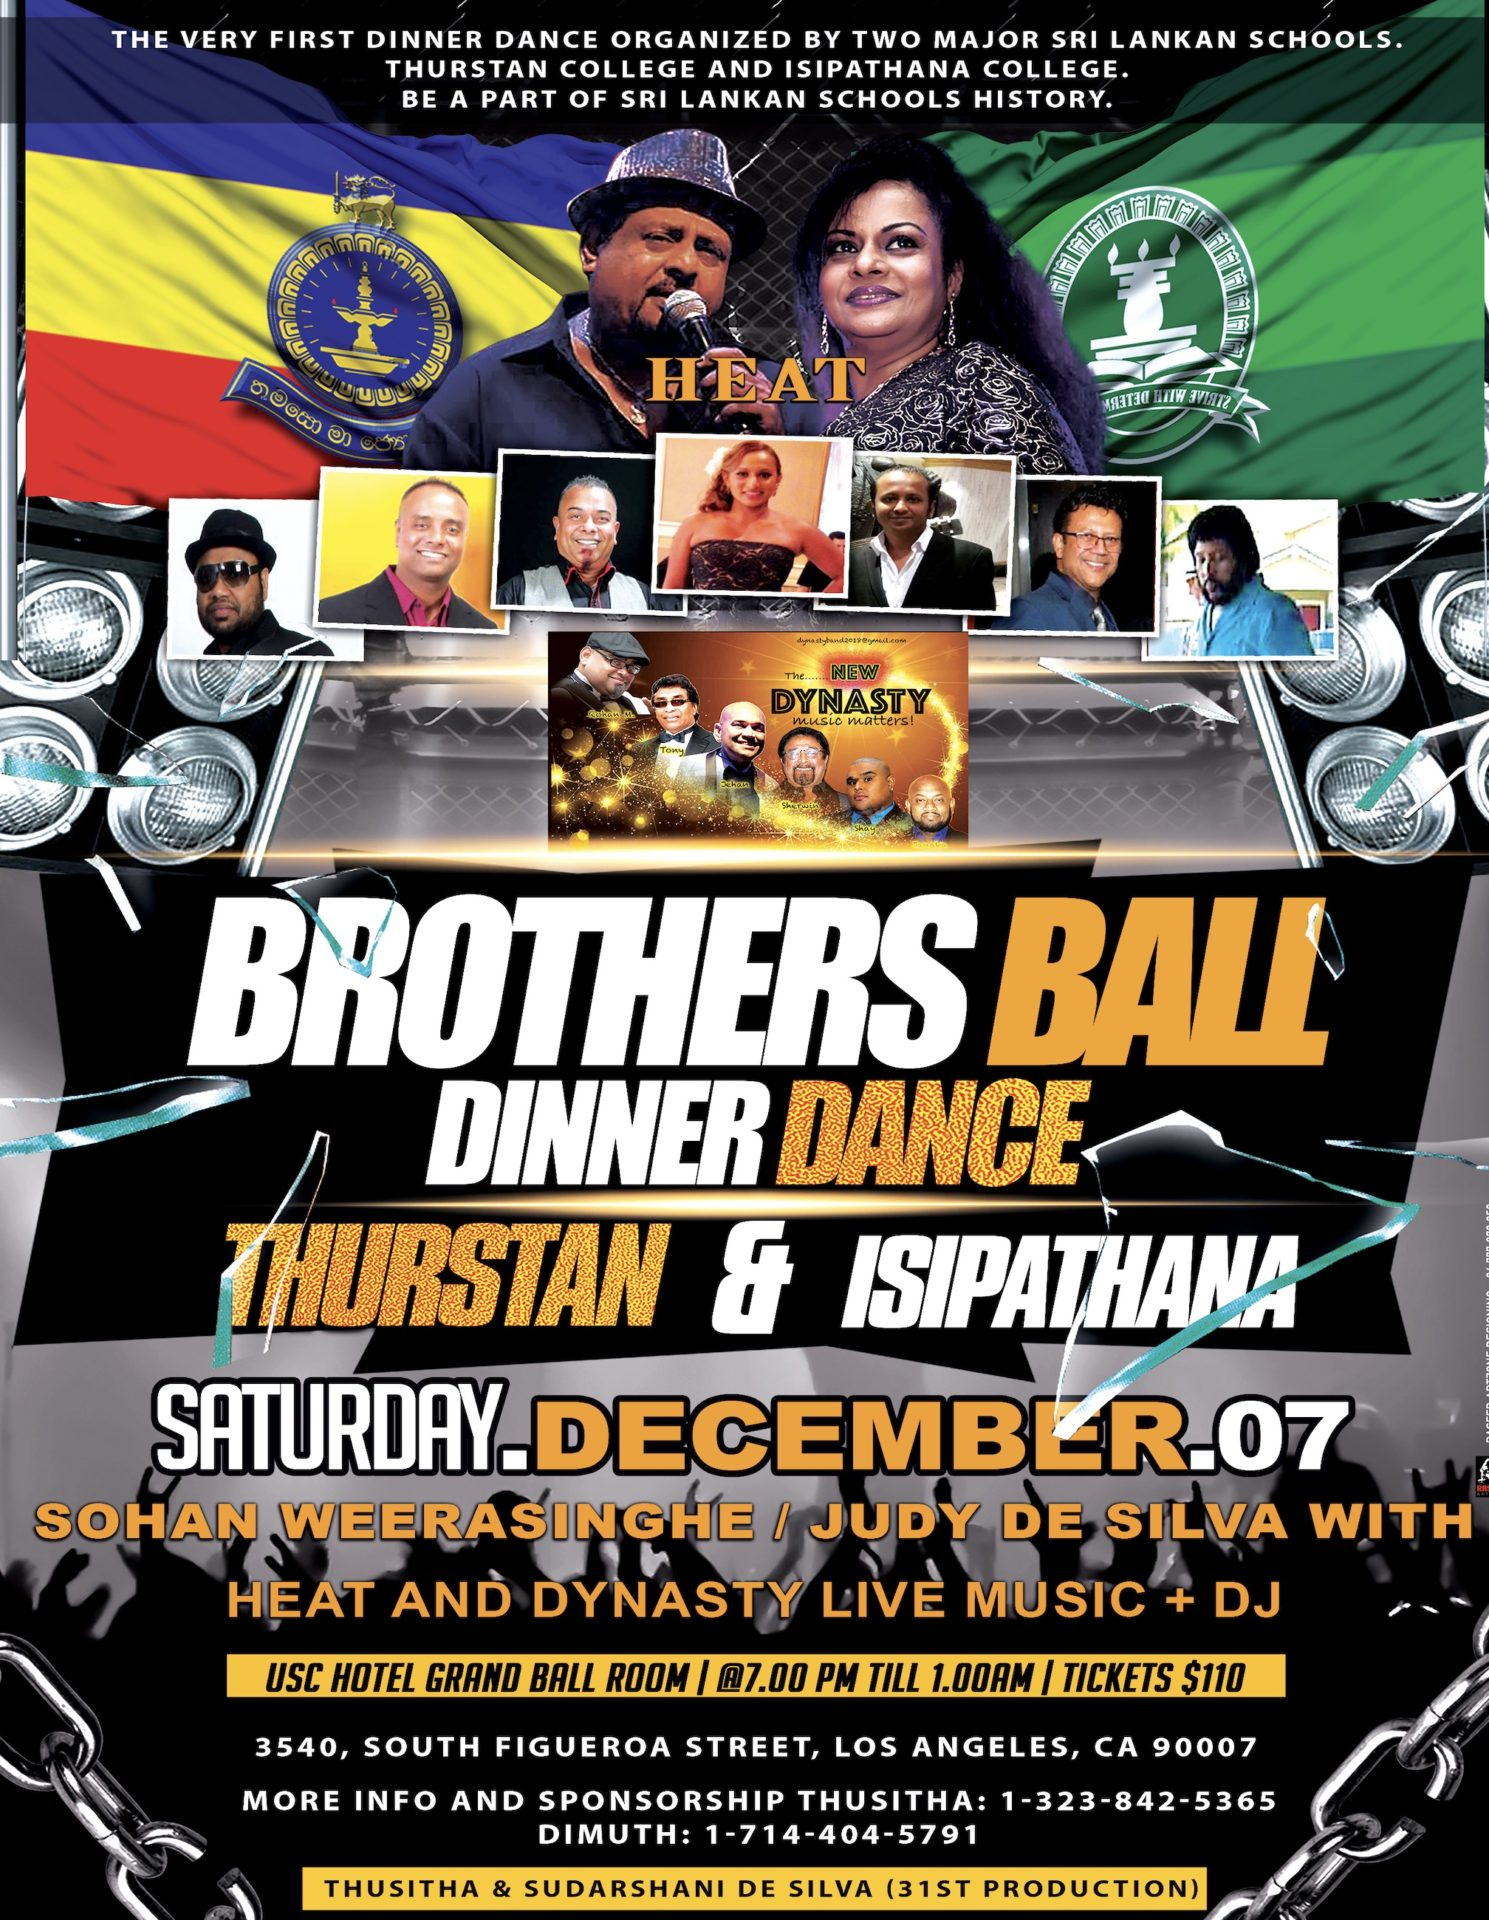 Brothers Ball - Thurstan & Isipathana Dinner Dance